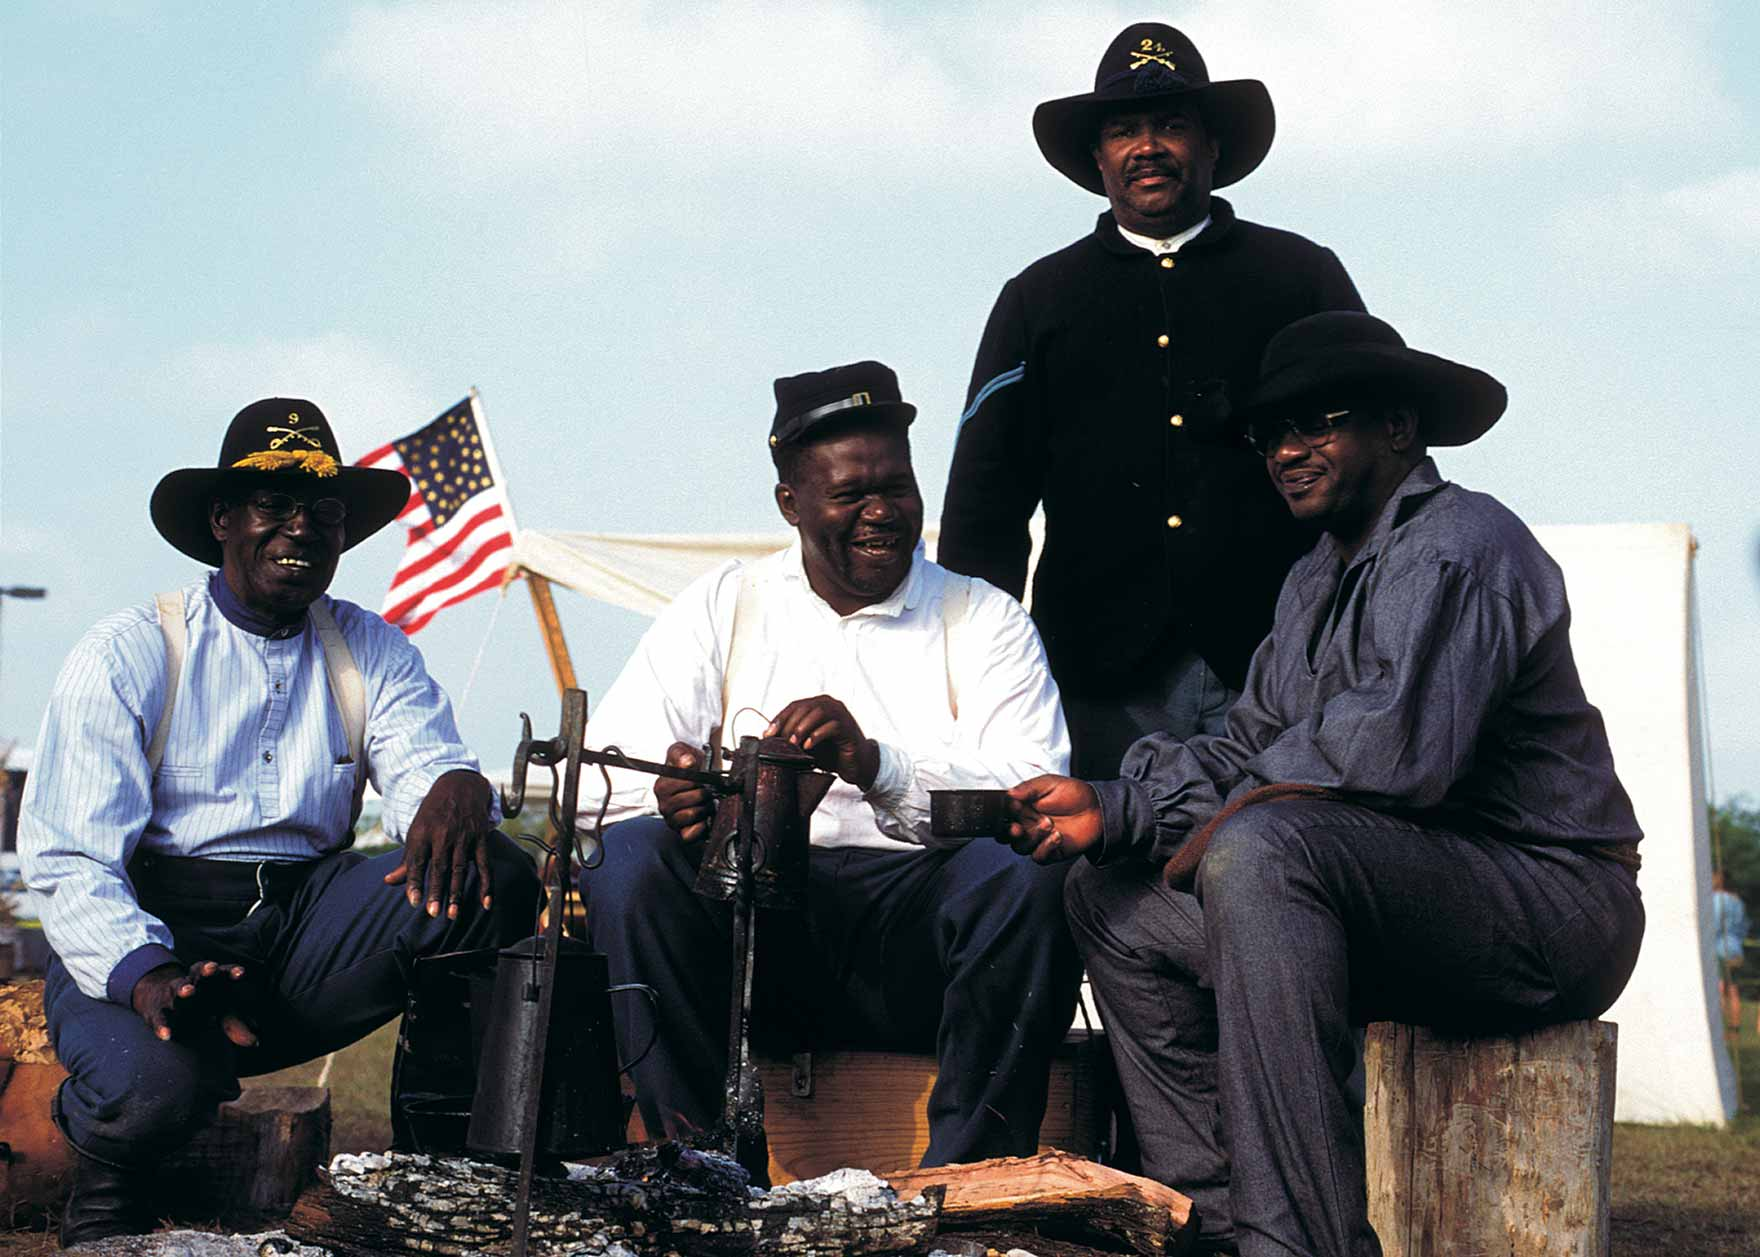 the buffalo soldiers Come and visit the historical buffalo soldier national museum and learn more  about not only african american history but american history as well the goal of .